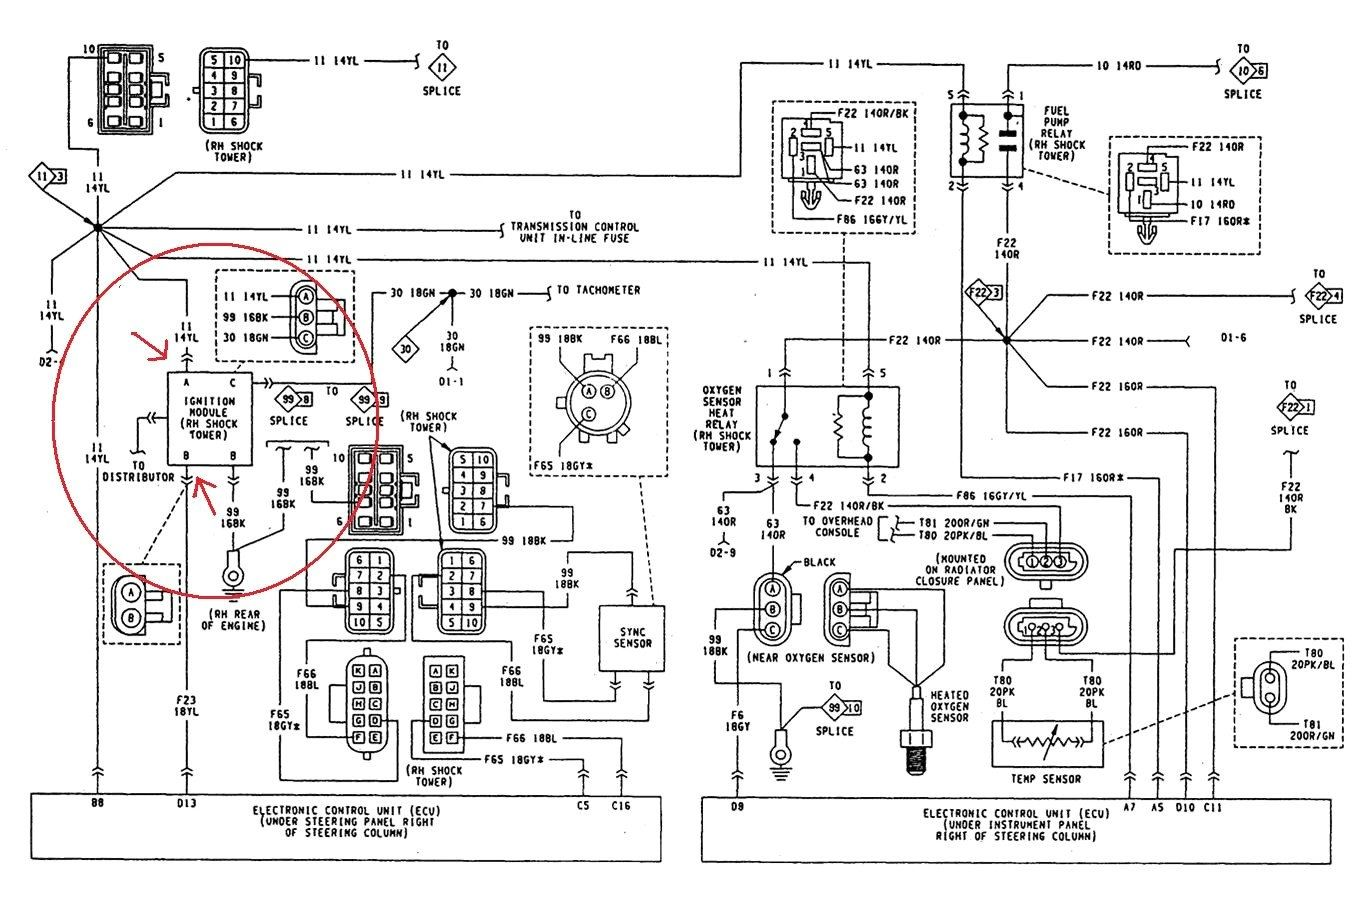 90 Jeep Wrangler Wiring Diagram - Data Wiring Diagram Update